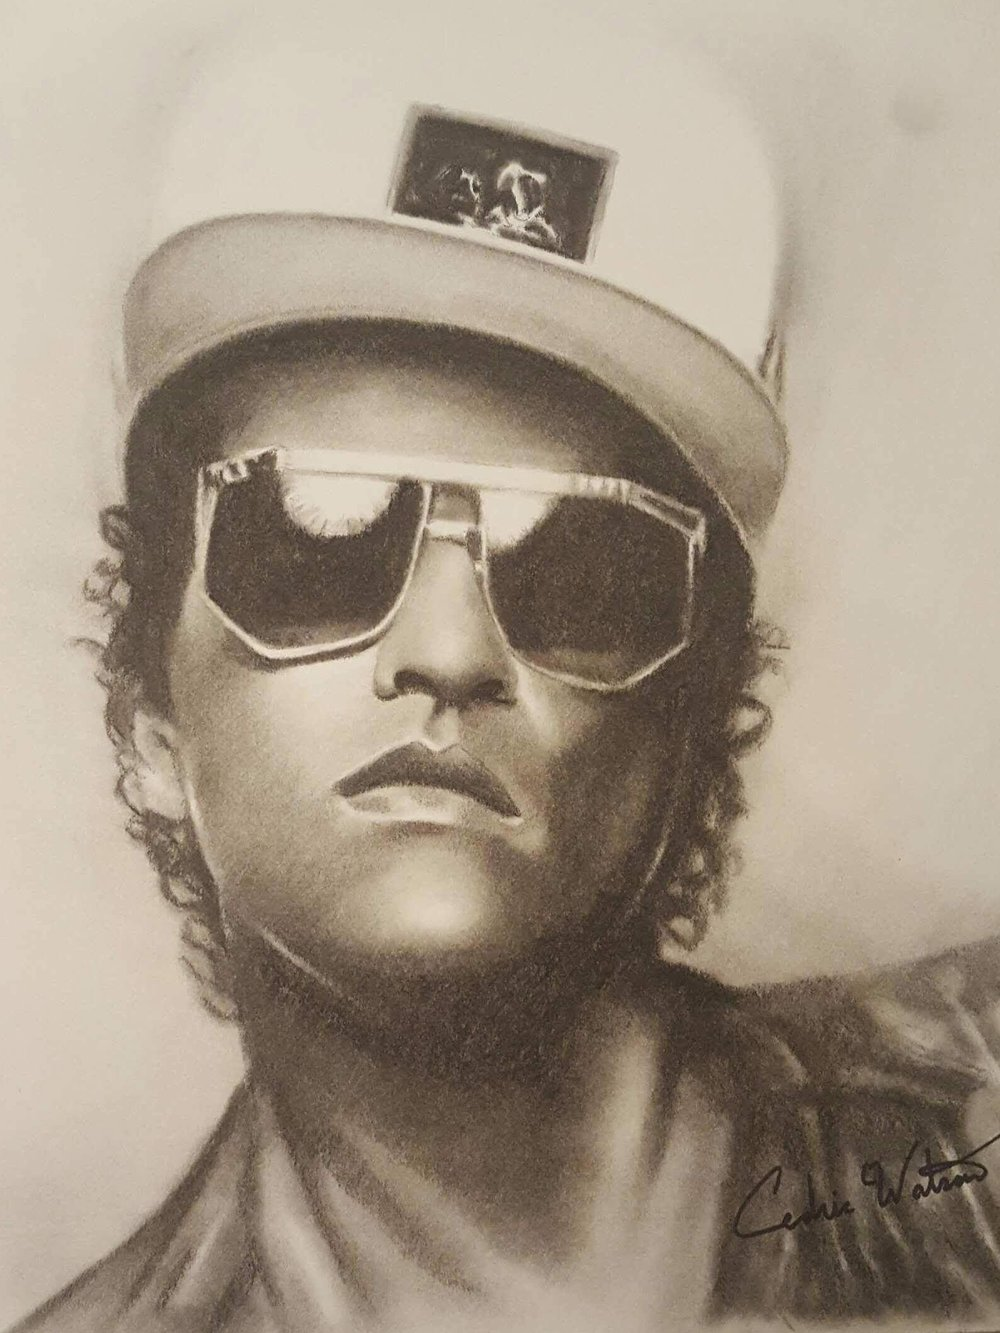 Cedric was inspired to create this charcoal drawing of Bruno Mars because he is such an inspiration to so many in the music industry.